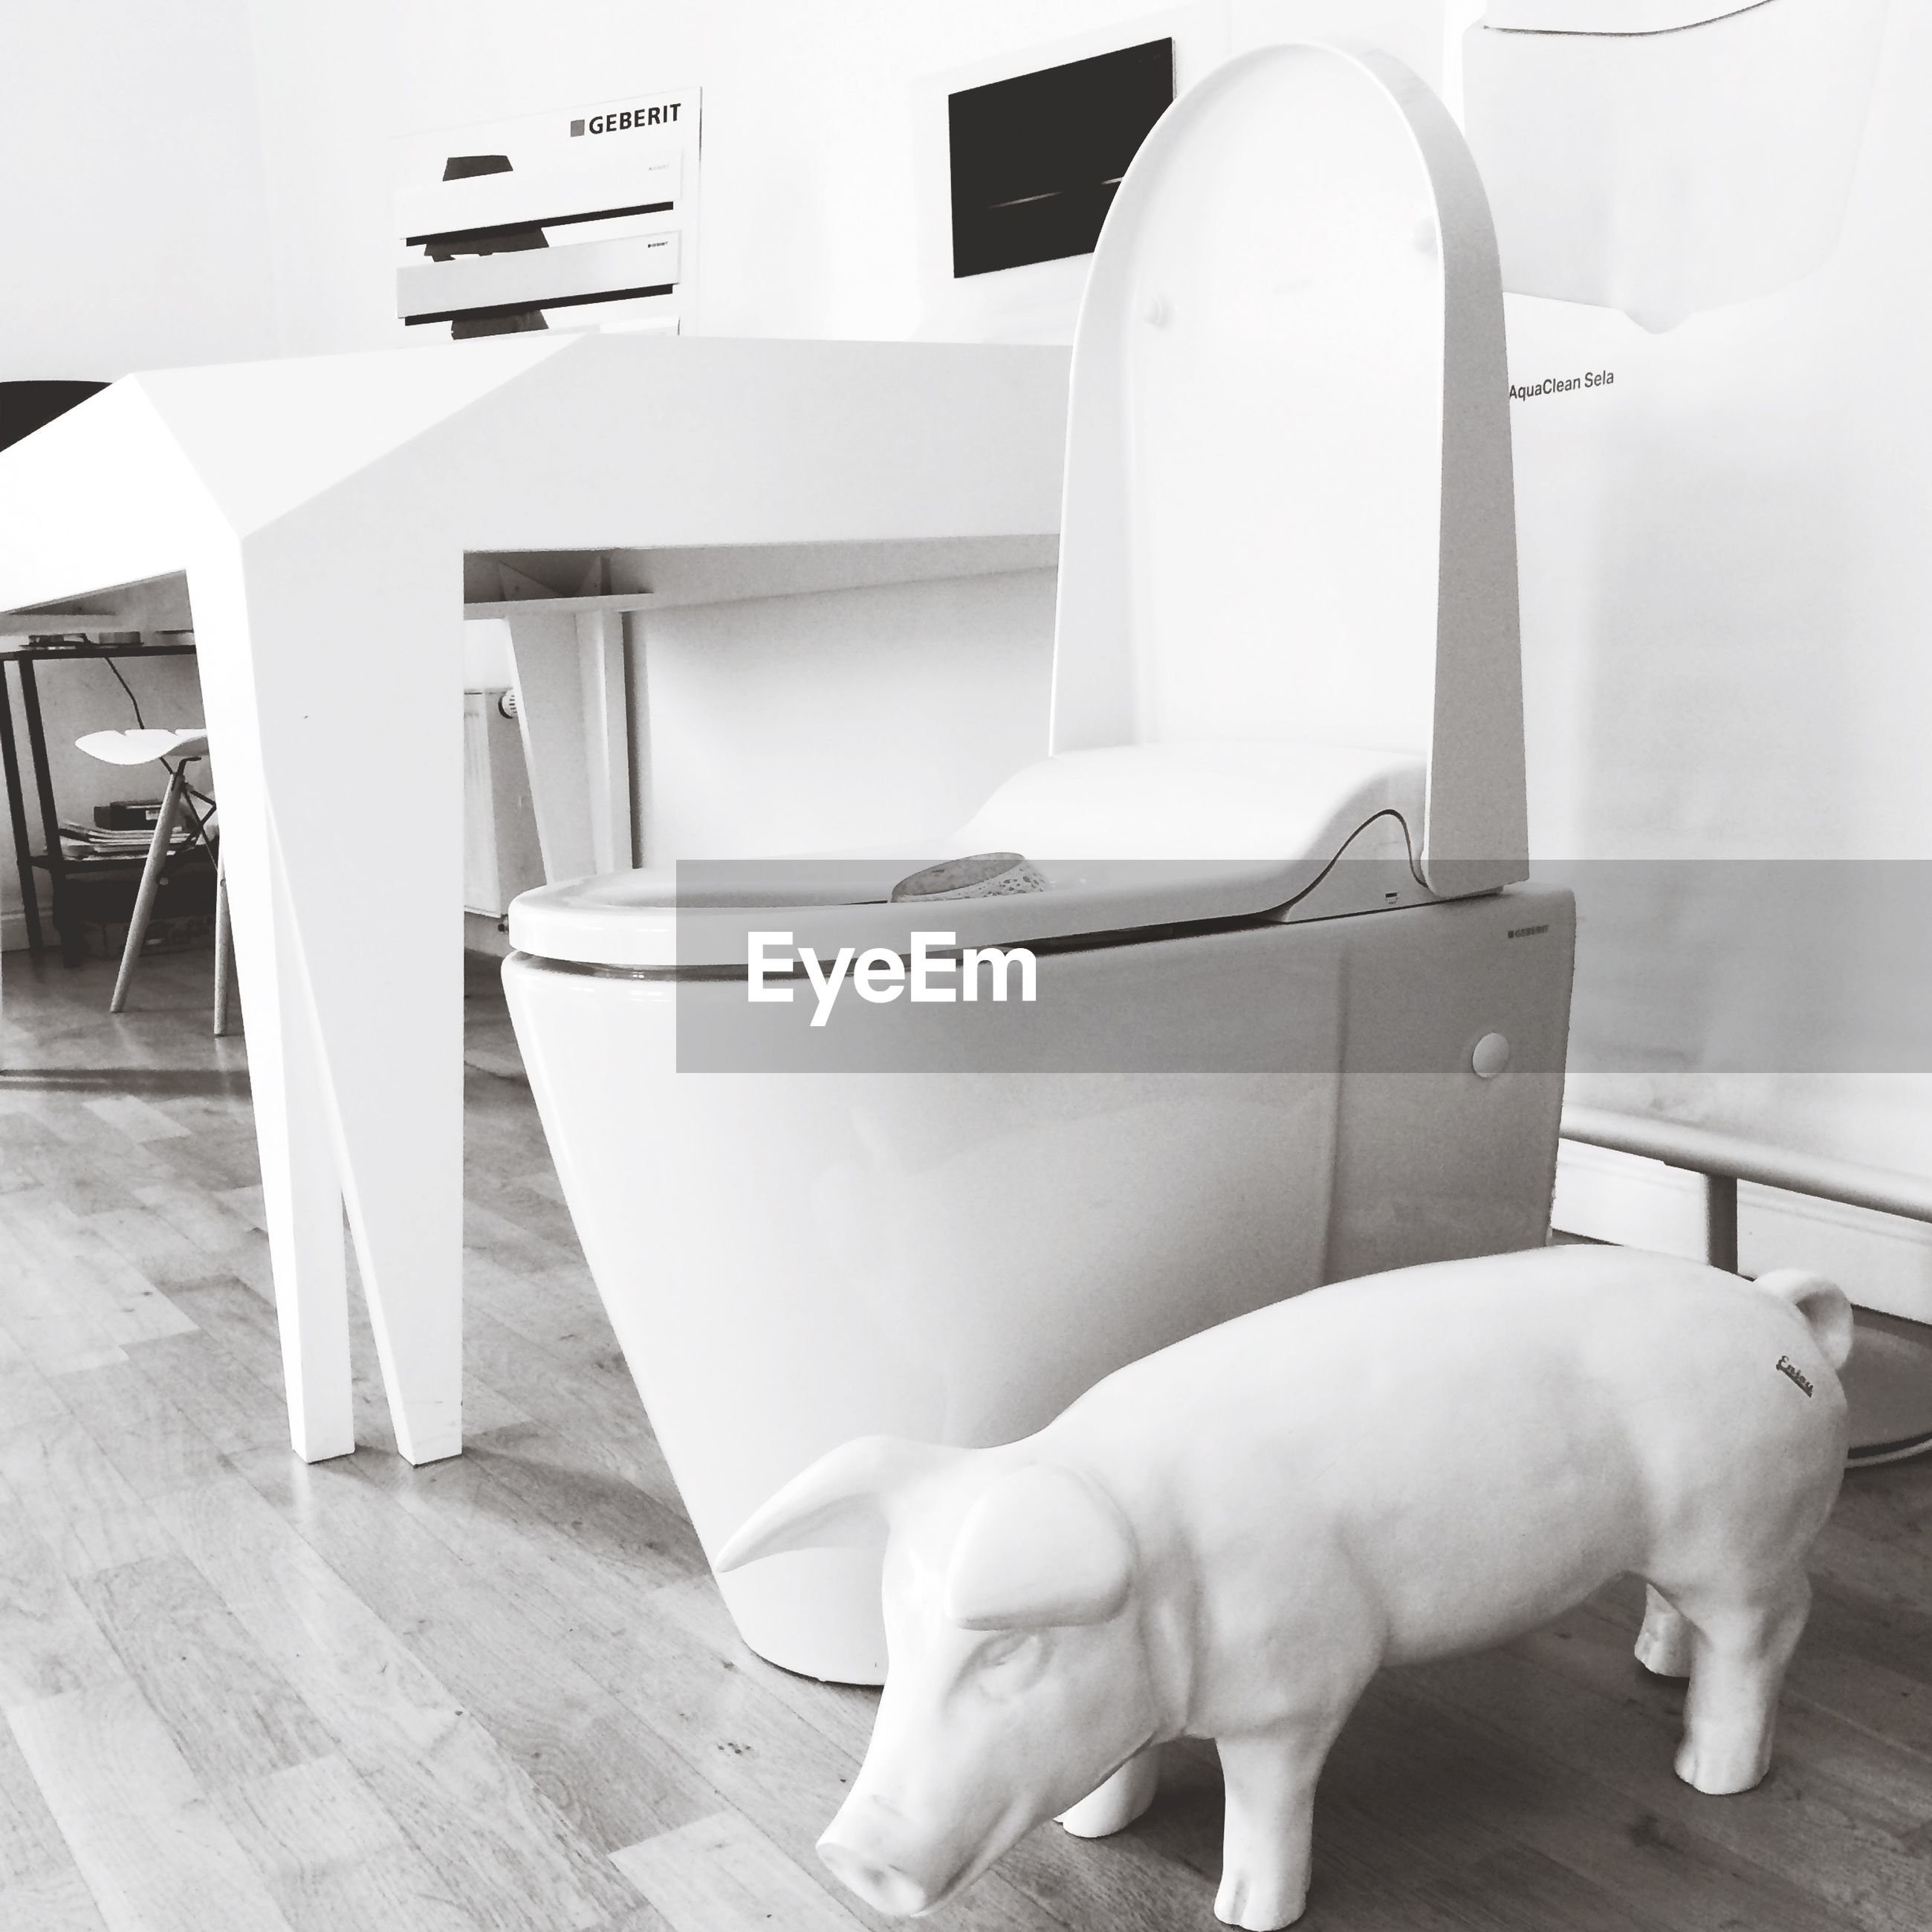 indoors, animal themes, one animal, white color, domestic animals, mammal, pets, animal representation, part of, human representation, architecture, day, art and craft, built structure, no people, relaxation, white, close-up, chair, art